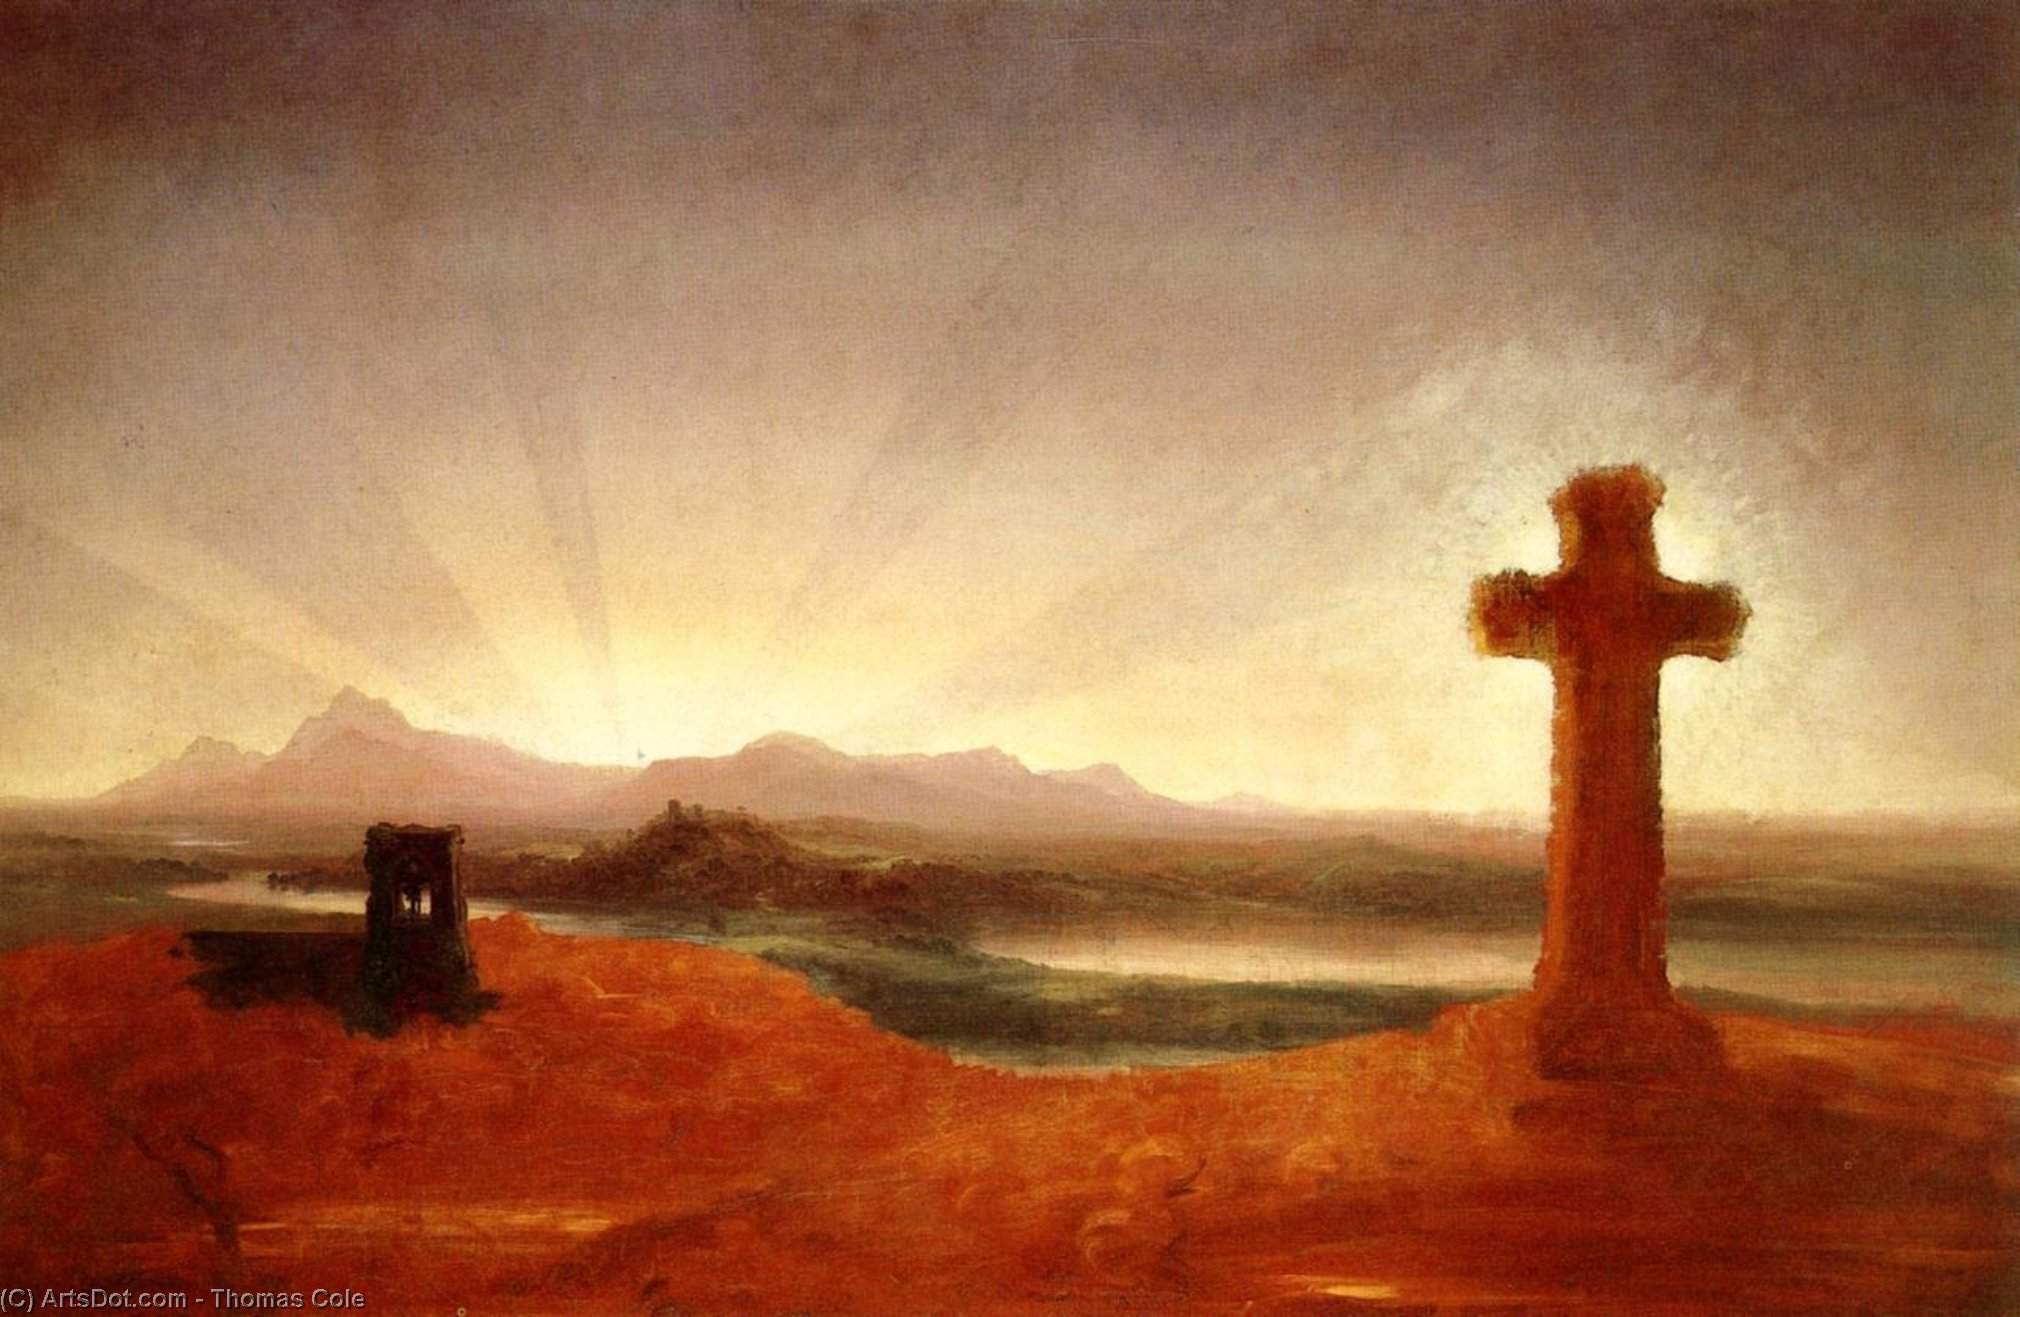 cruz al atardecer, óleo sobre lienzo de Thomas Cole (1801-1848, United Kingdom)